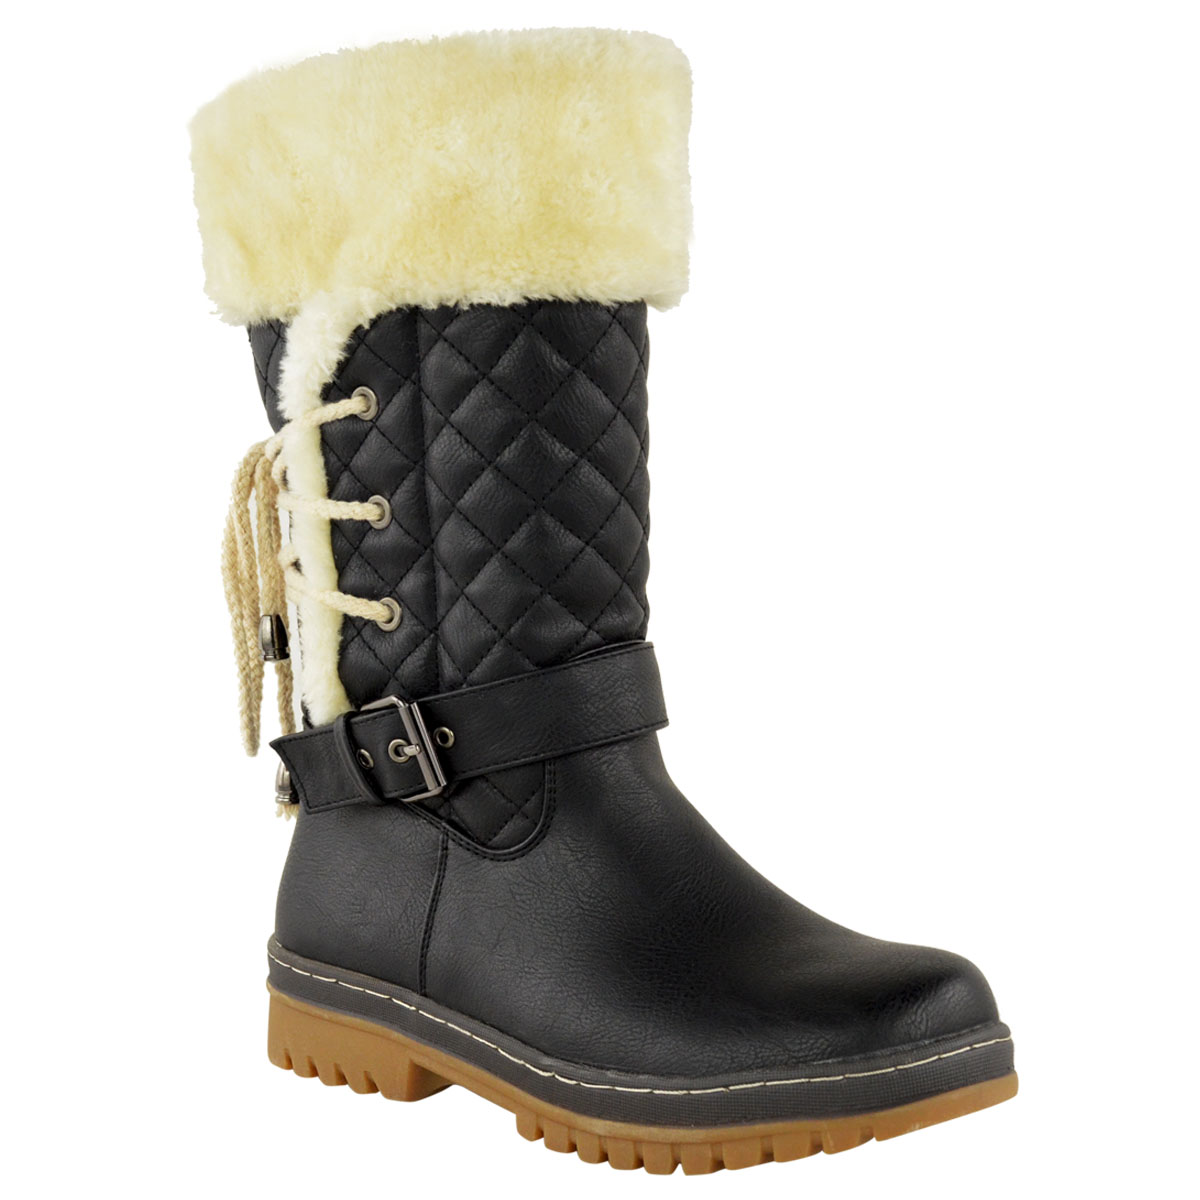 Womens Shoe Boots Size